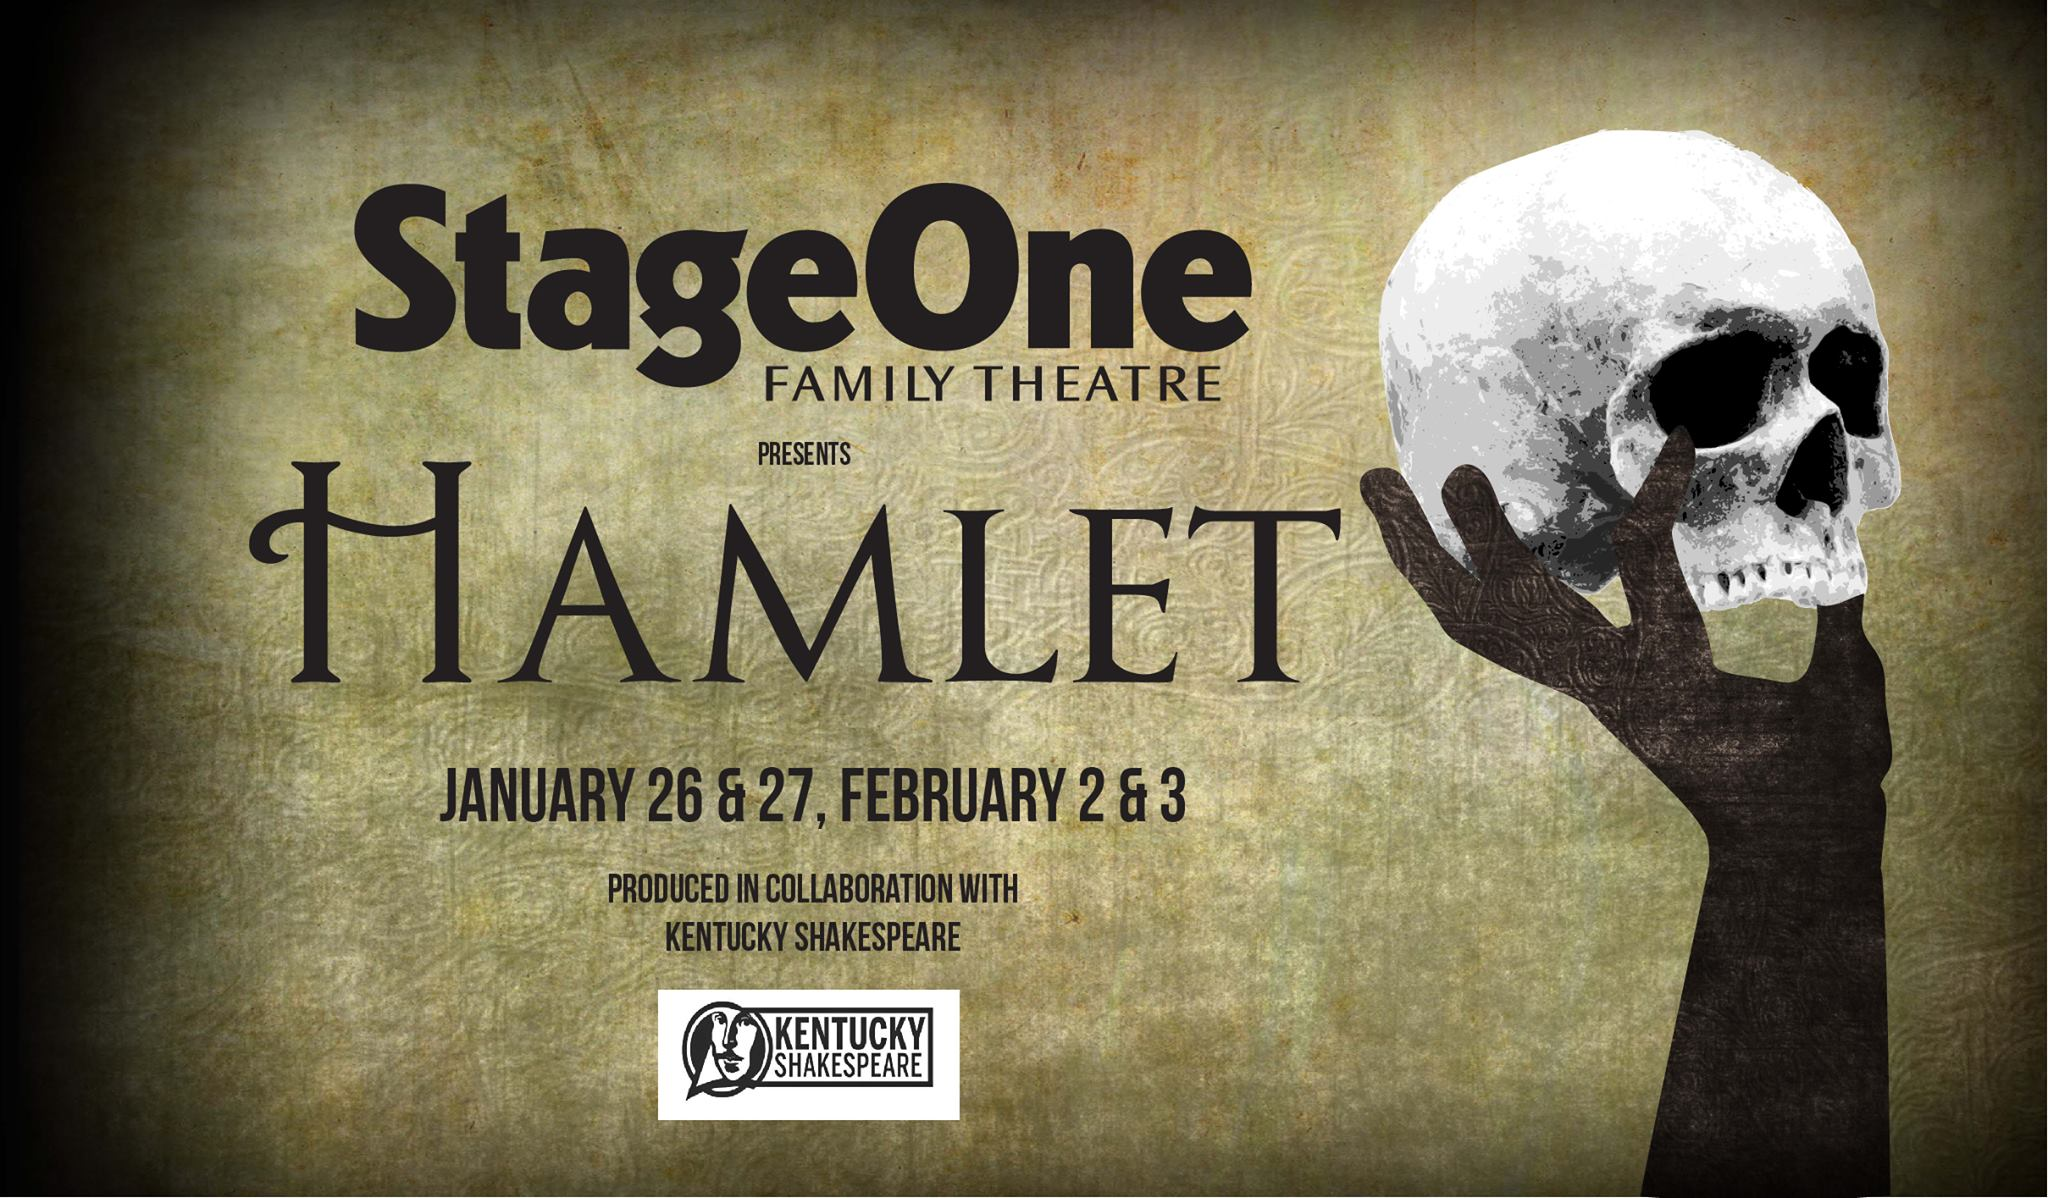 StageOne joins with Kentucky Shakespeare to present this contemporary take on William Shakespeare Hamlet